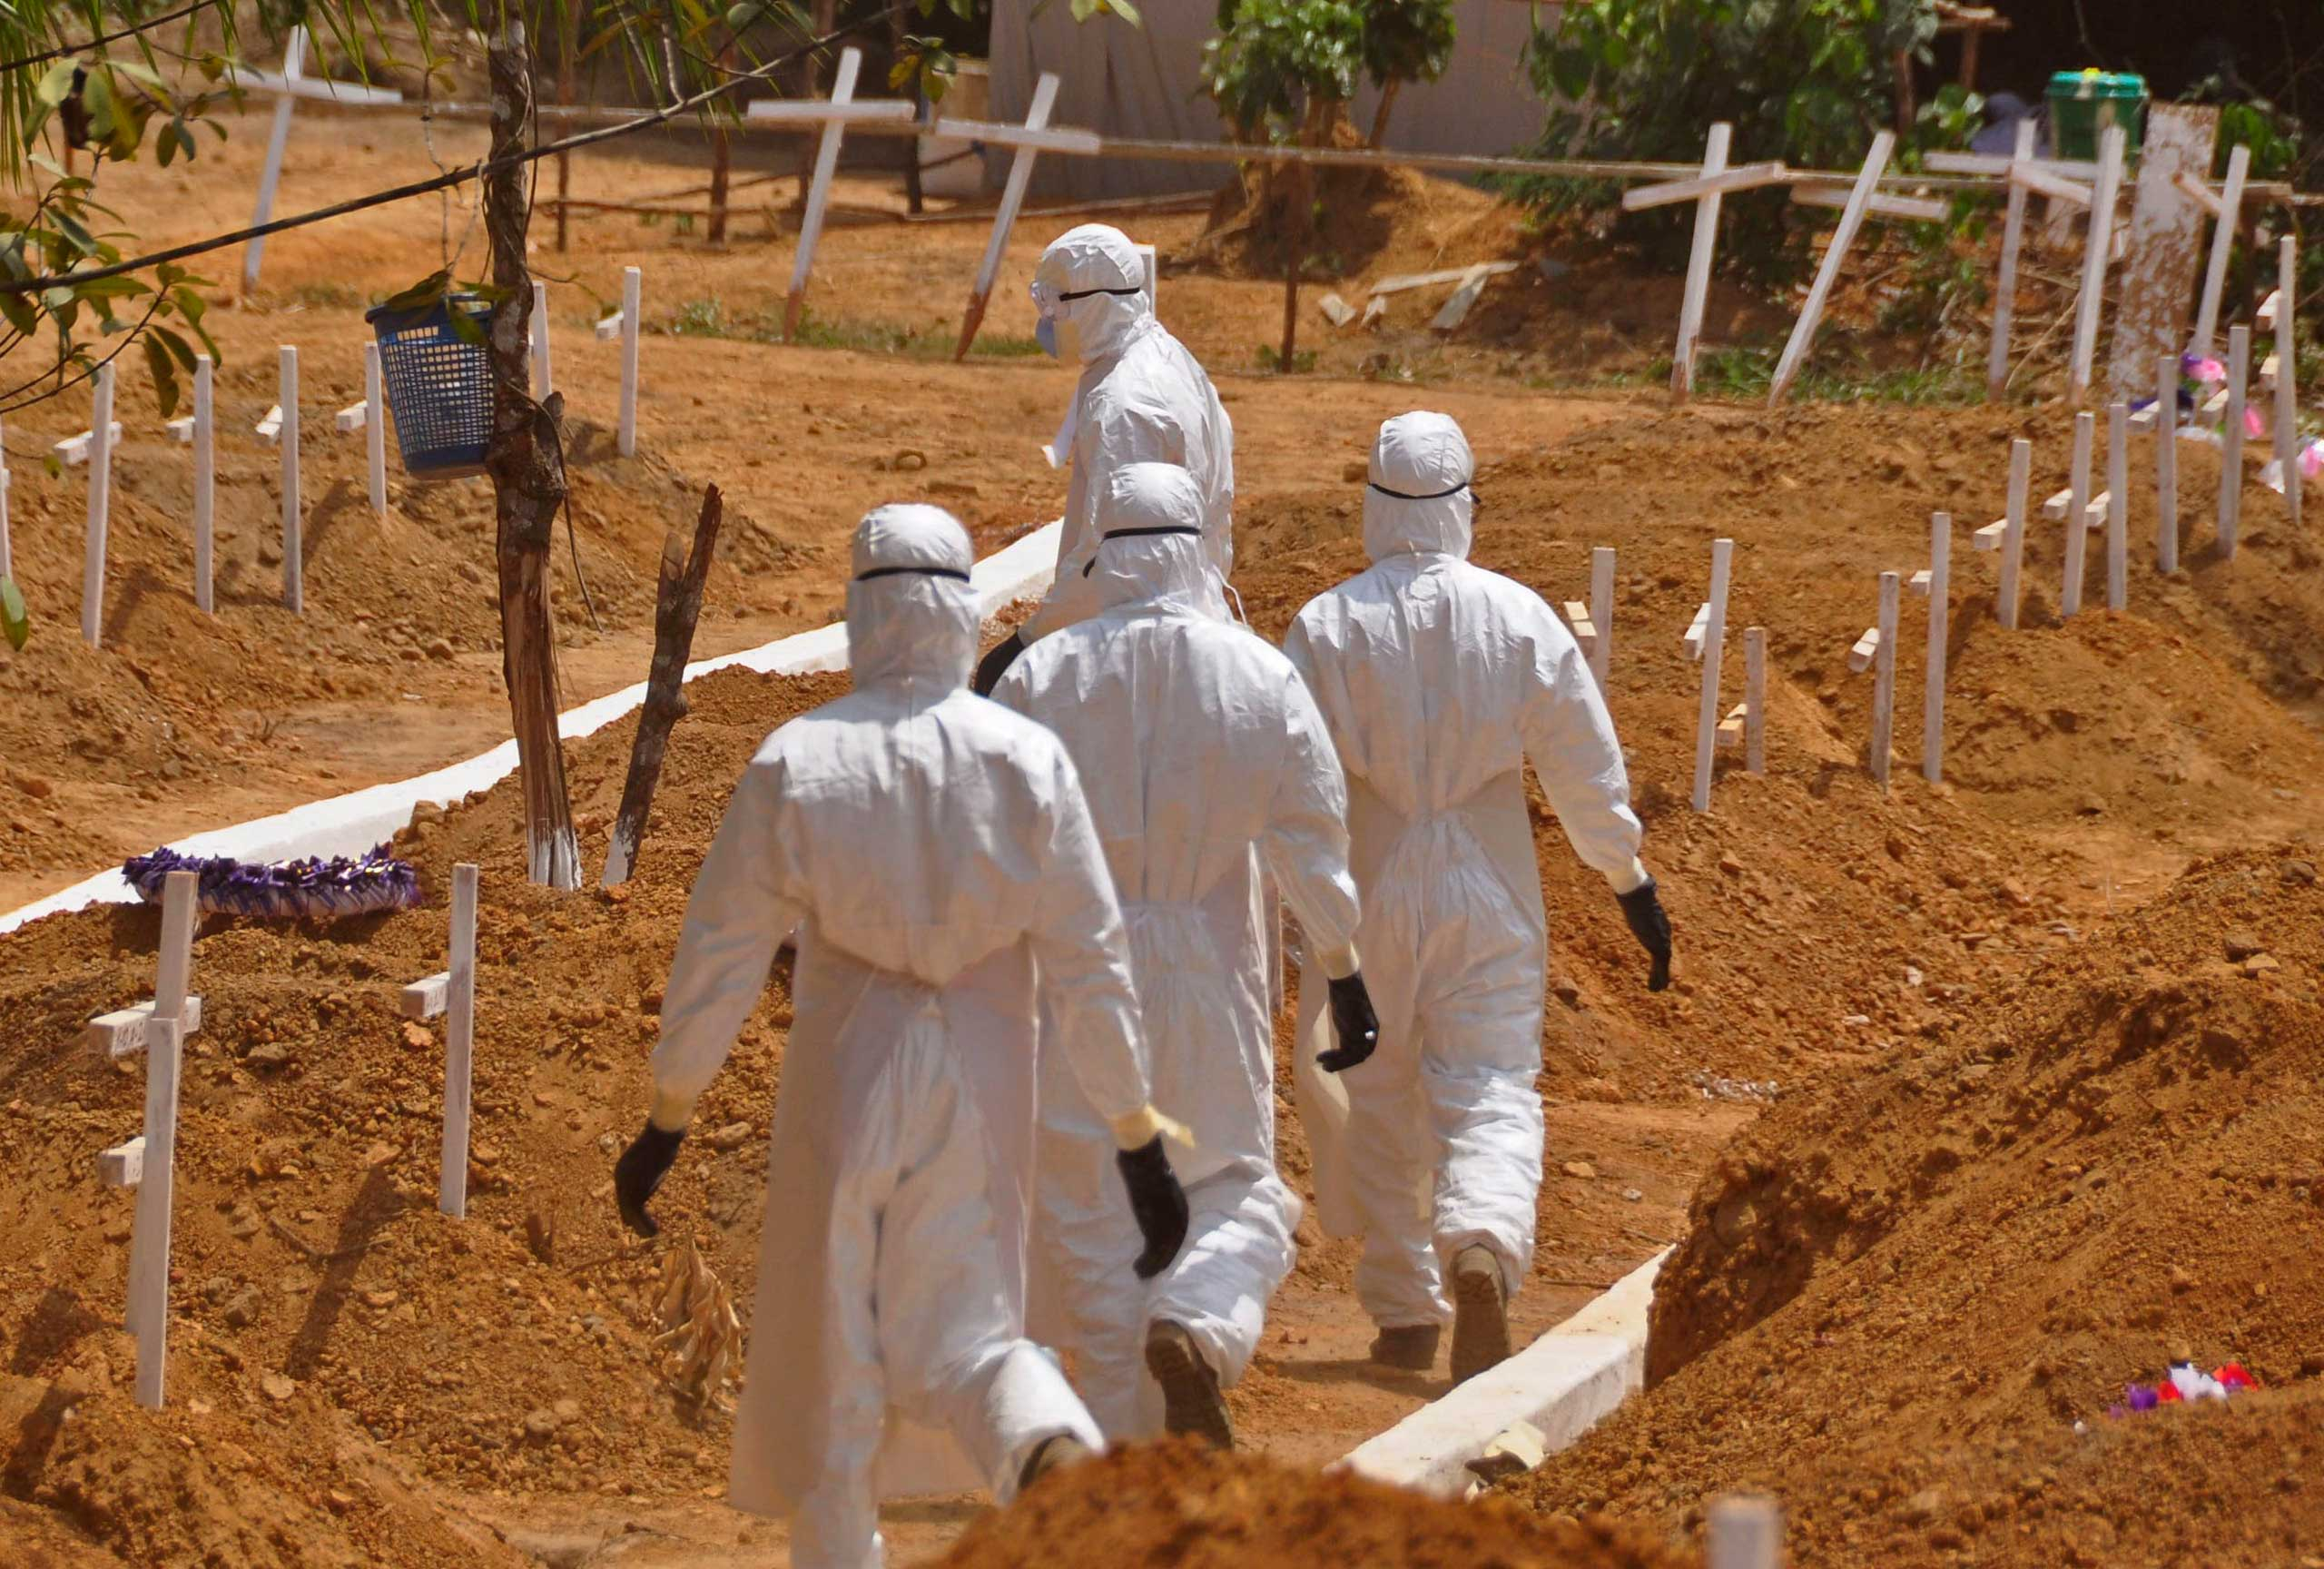 Health workers walk inside a new graveyard for Ebola victims, on the outskirts of Monrovia, Liberia on March 11, 2015.